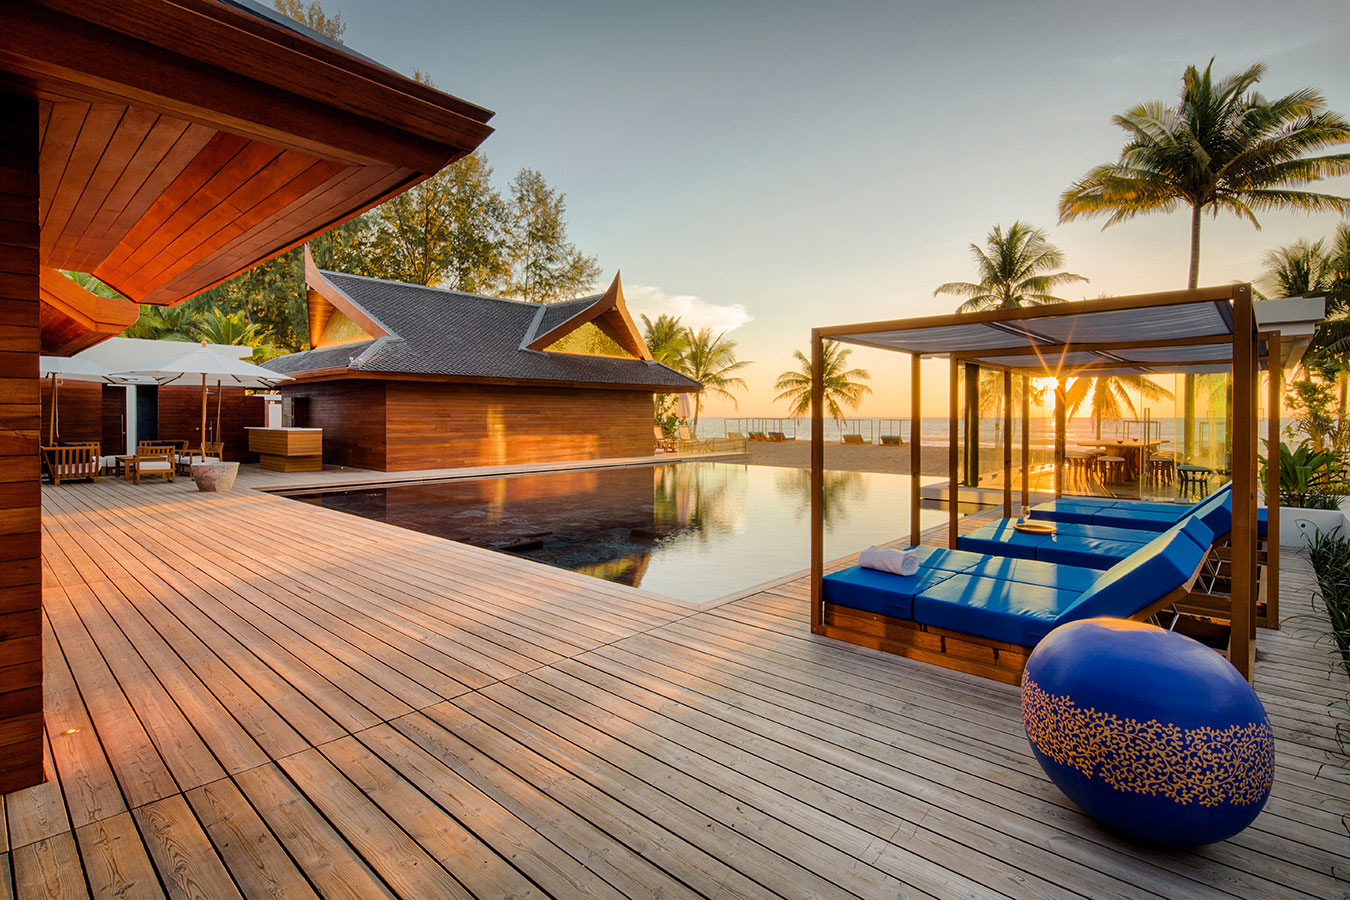 a swimming pool and day beds at a resort in Phuket